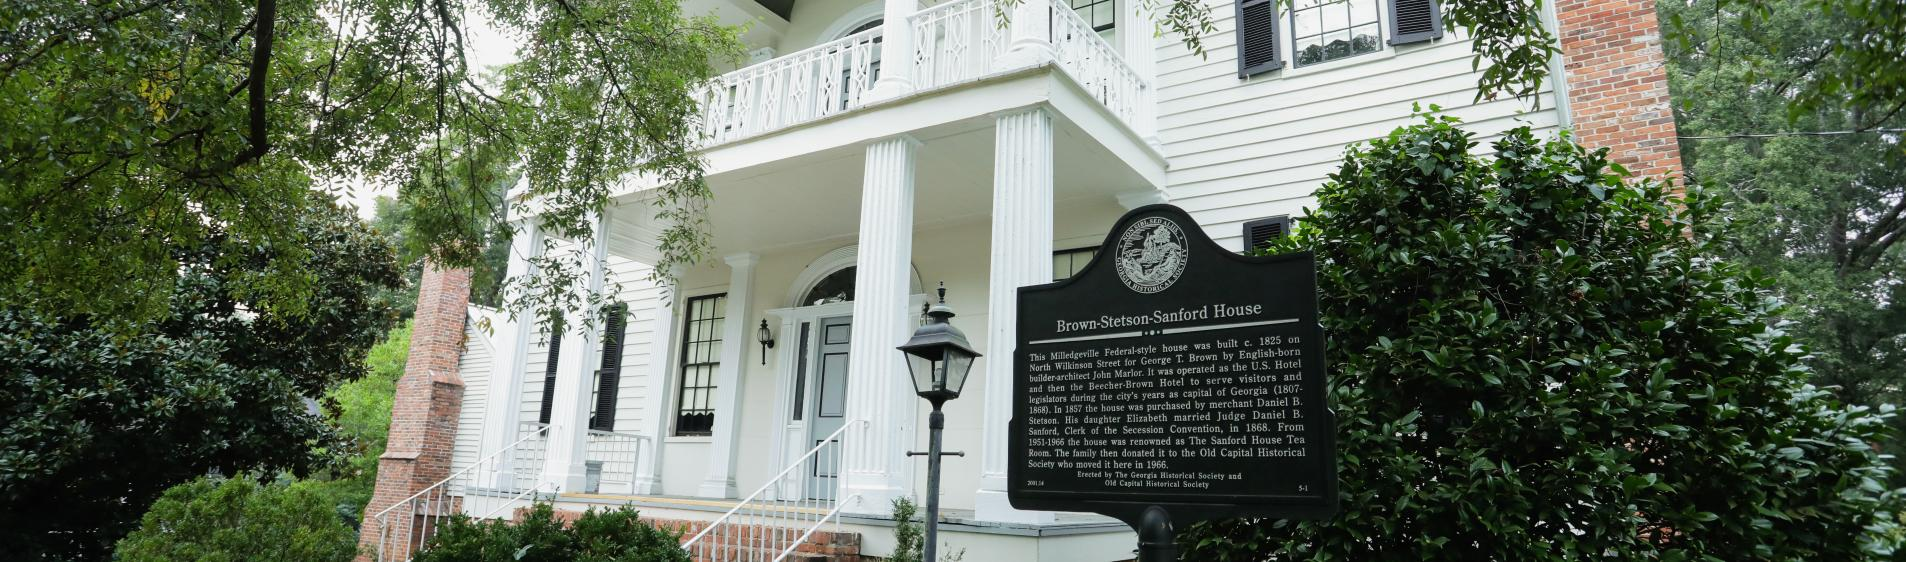 The Sanford House in Milledgeville